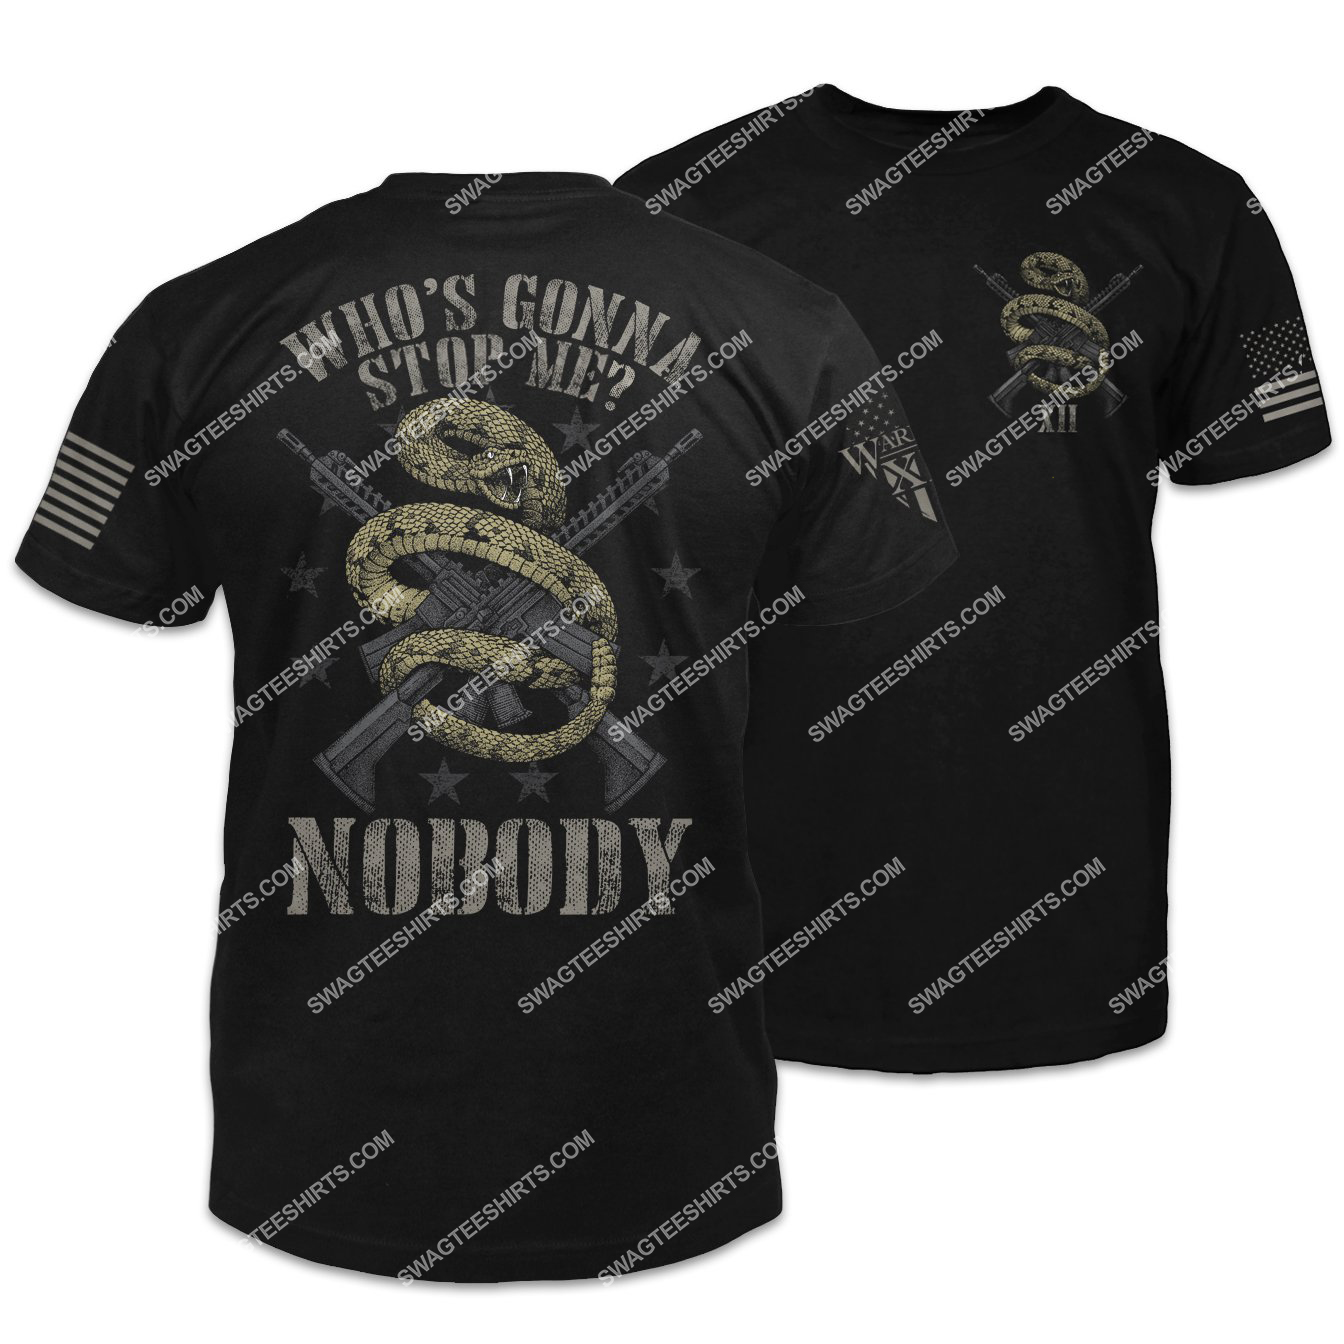 who's gonna stop me nobody snake with guns shirt 1 - Copy (2)